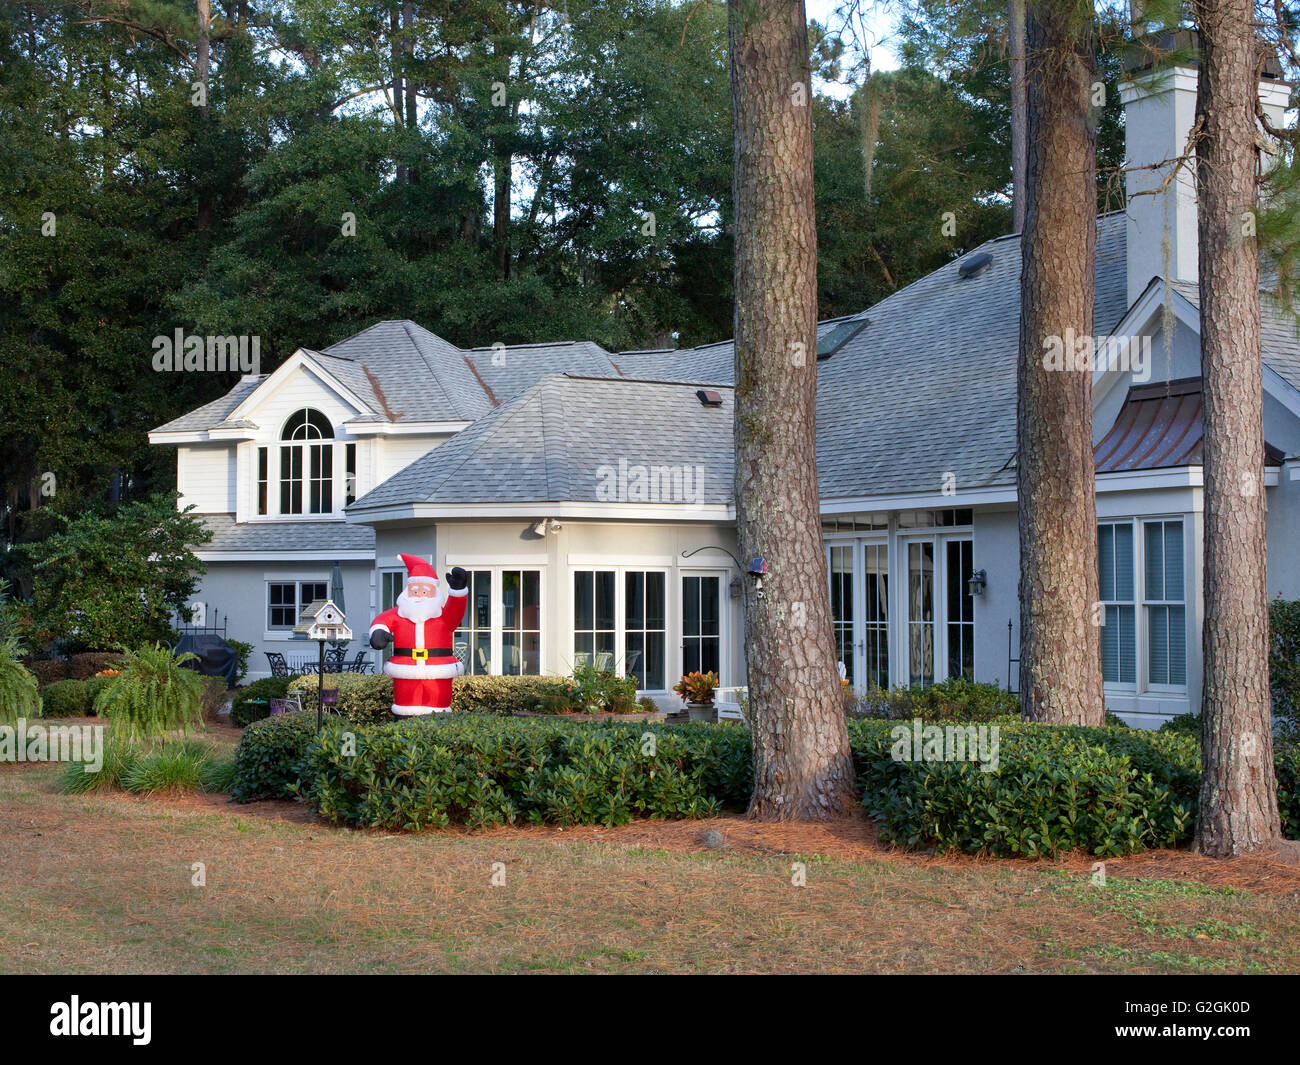 Suburban home with inflatable Santa Claus in South Carolina suburban retirement community - Stock Image